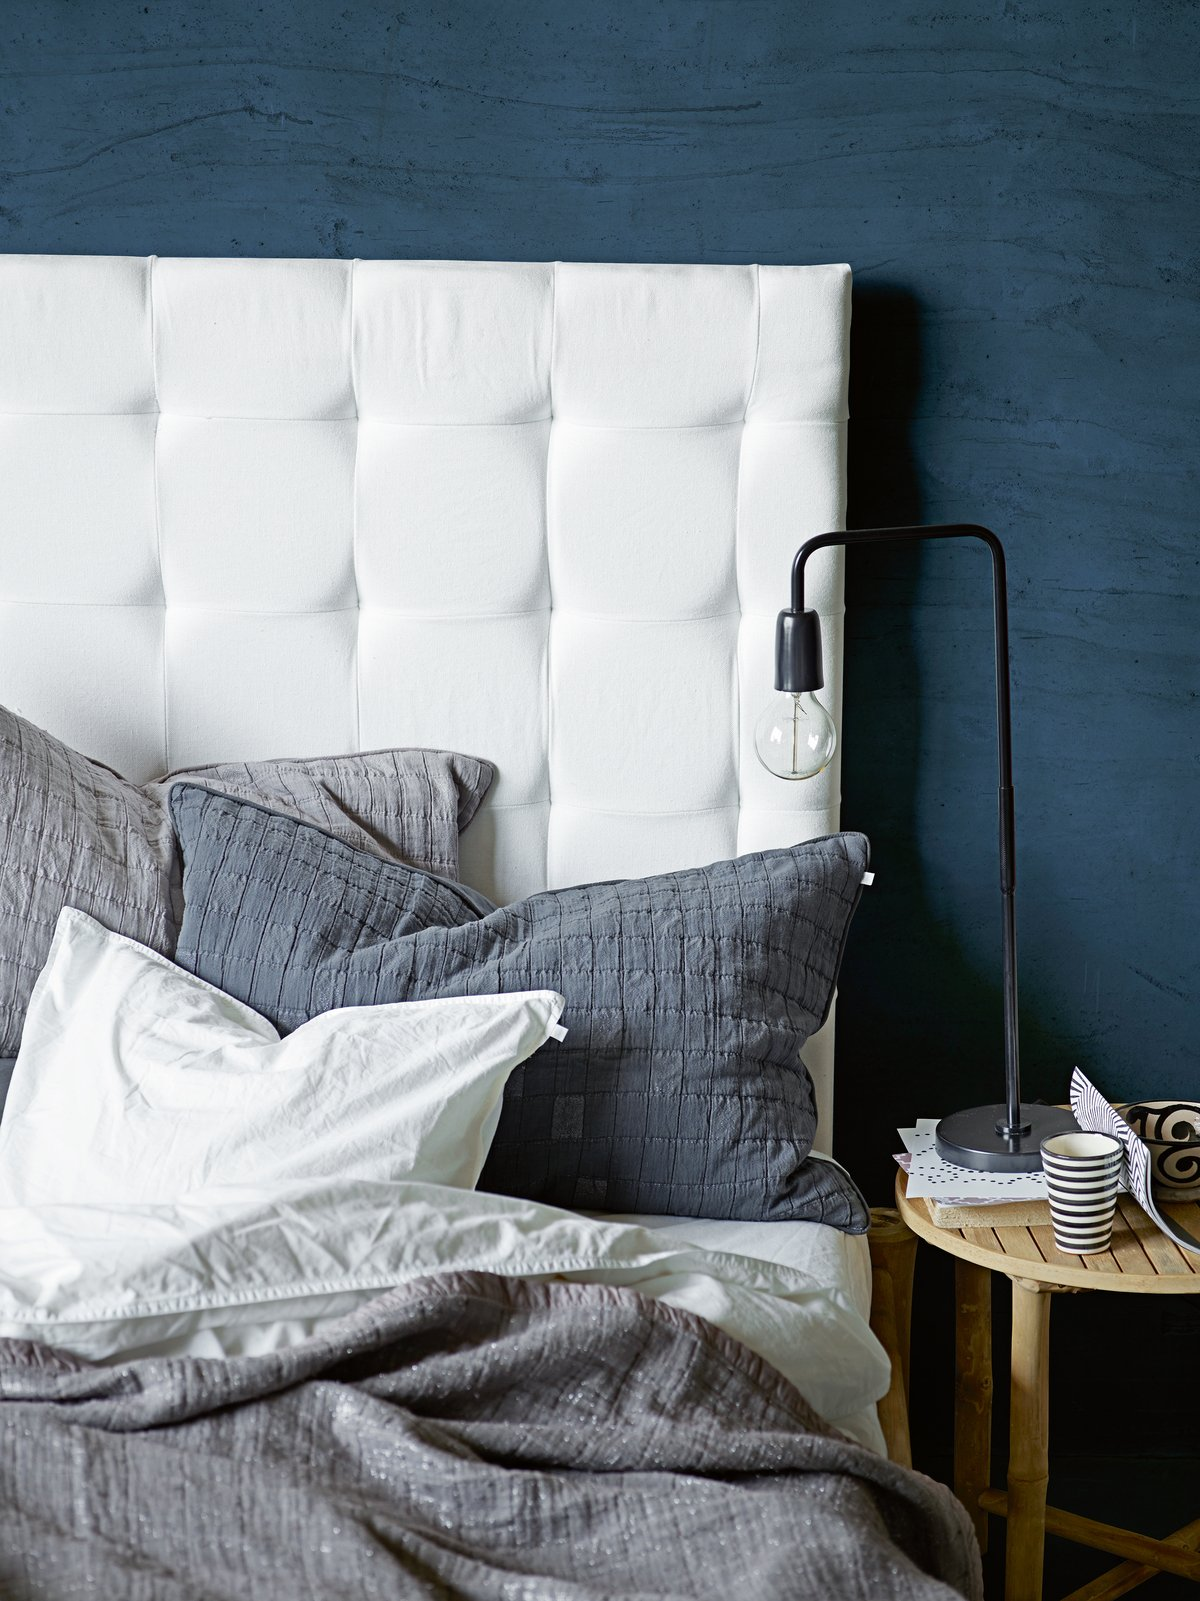 tinekhome_aw15_bedboard_glamthrow-ma_glampillow-ph_tablemet-bl_softbed.jpg